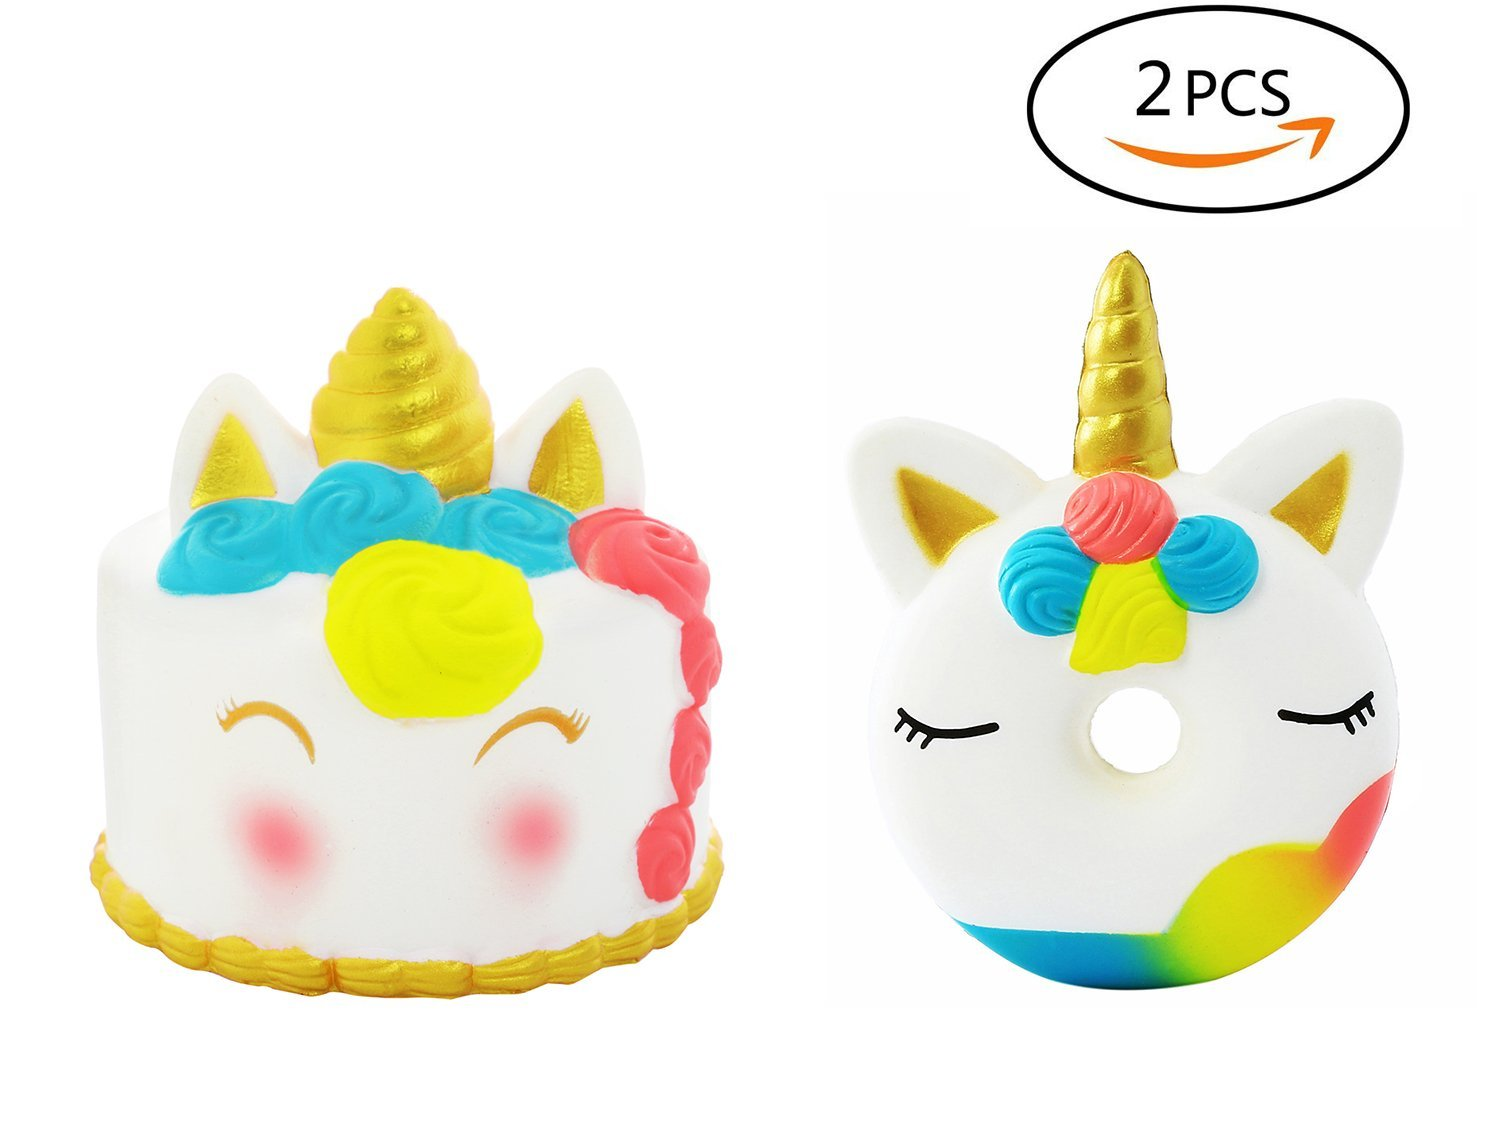 AOLIGE 2PCs Squishies Slow Rising Jumbo Kawaii Cute Unicorn Donut & Golden Unicorn Cake Creamy Scent for Kids Party Toys Stress Reliever Toy MiaoZhen